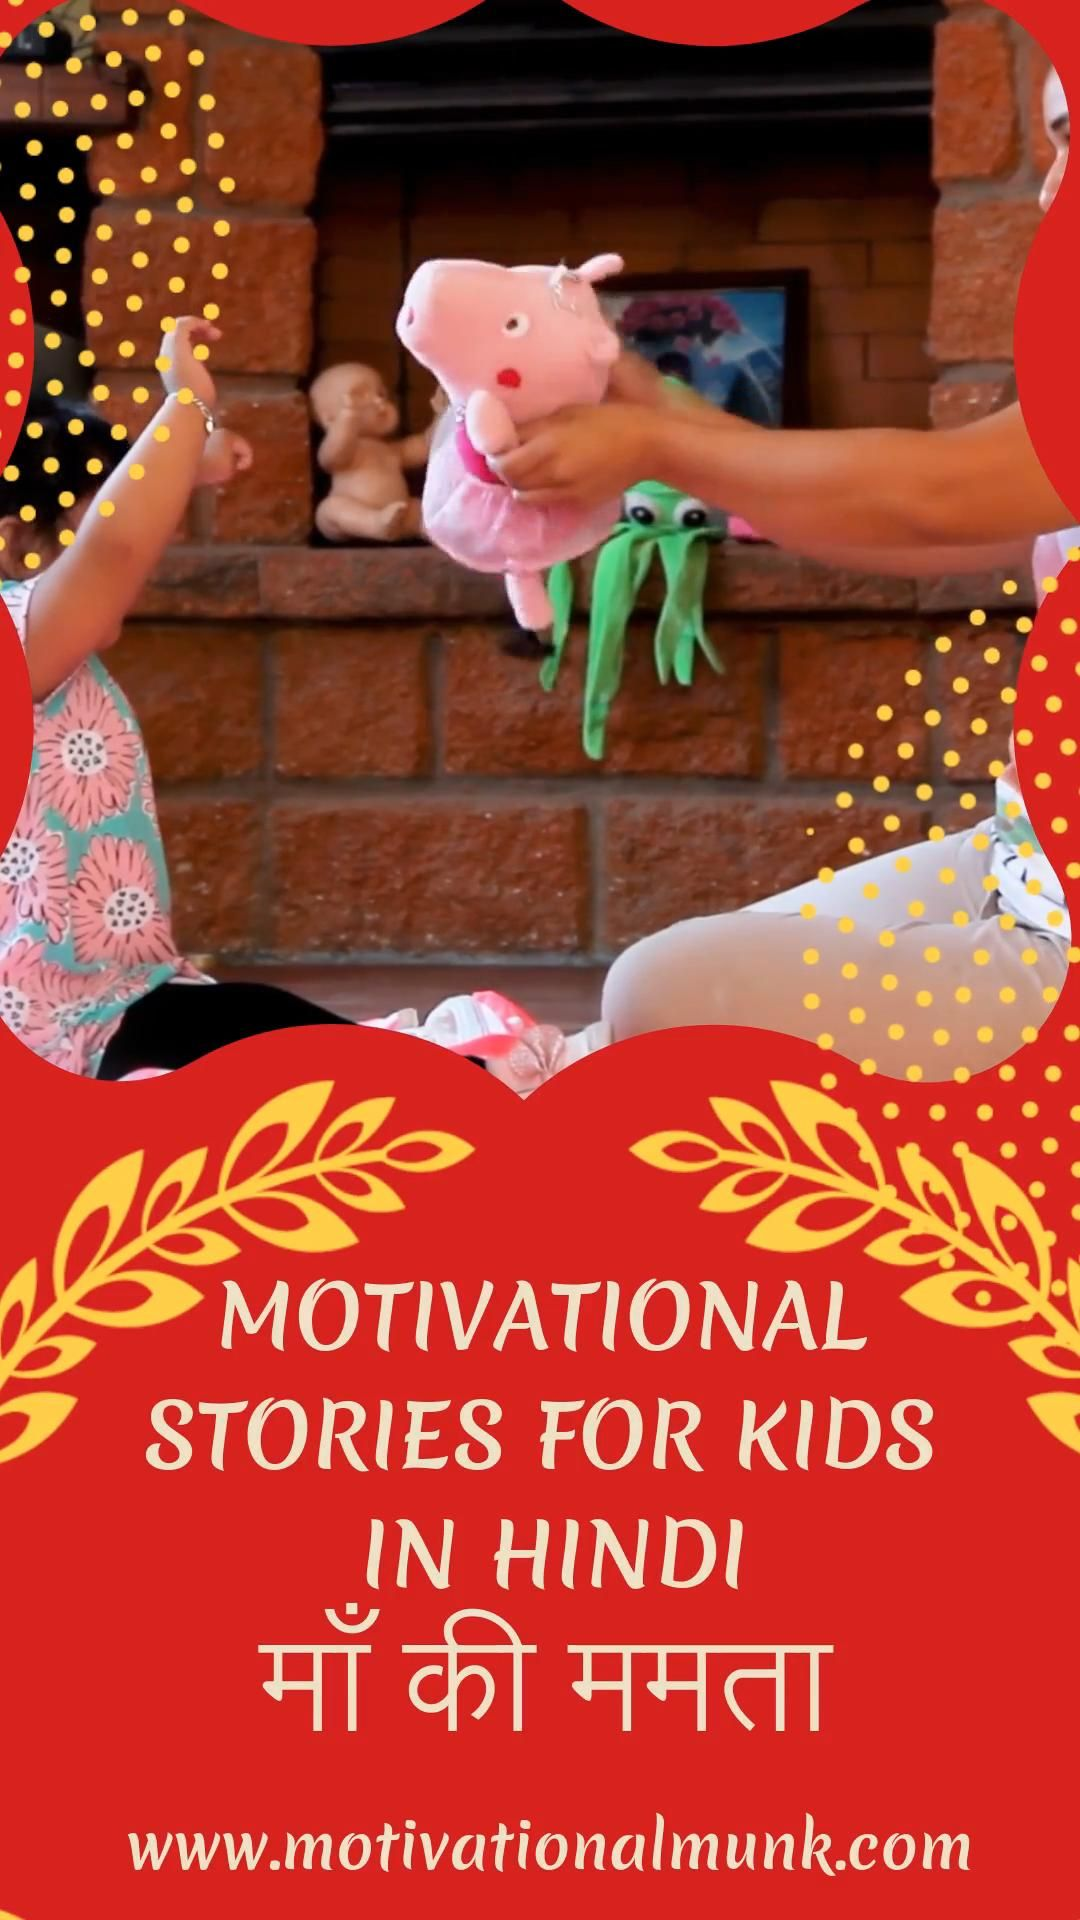 Motivational Story For Kids In Hindi Video In 2020 Motivational Stories Stories For Kids Inspirational Stories For Kids [ 1920 x 1080 Pixel ]